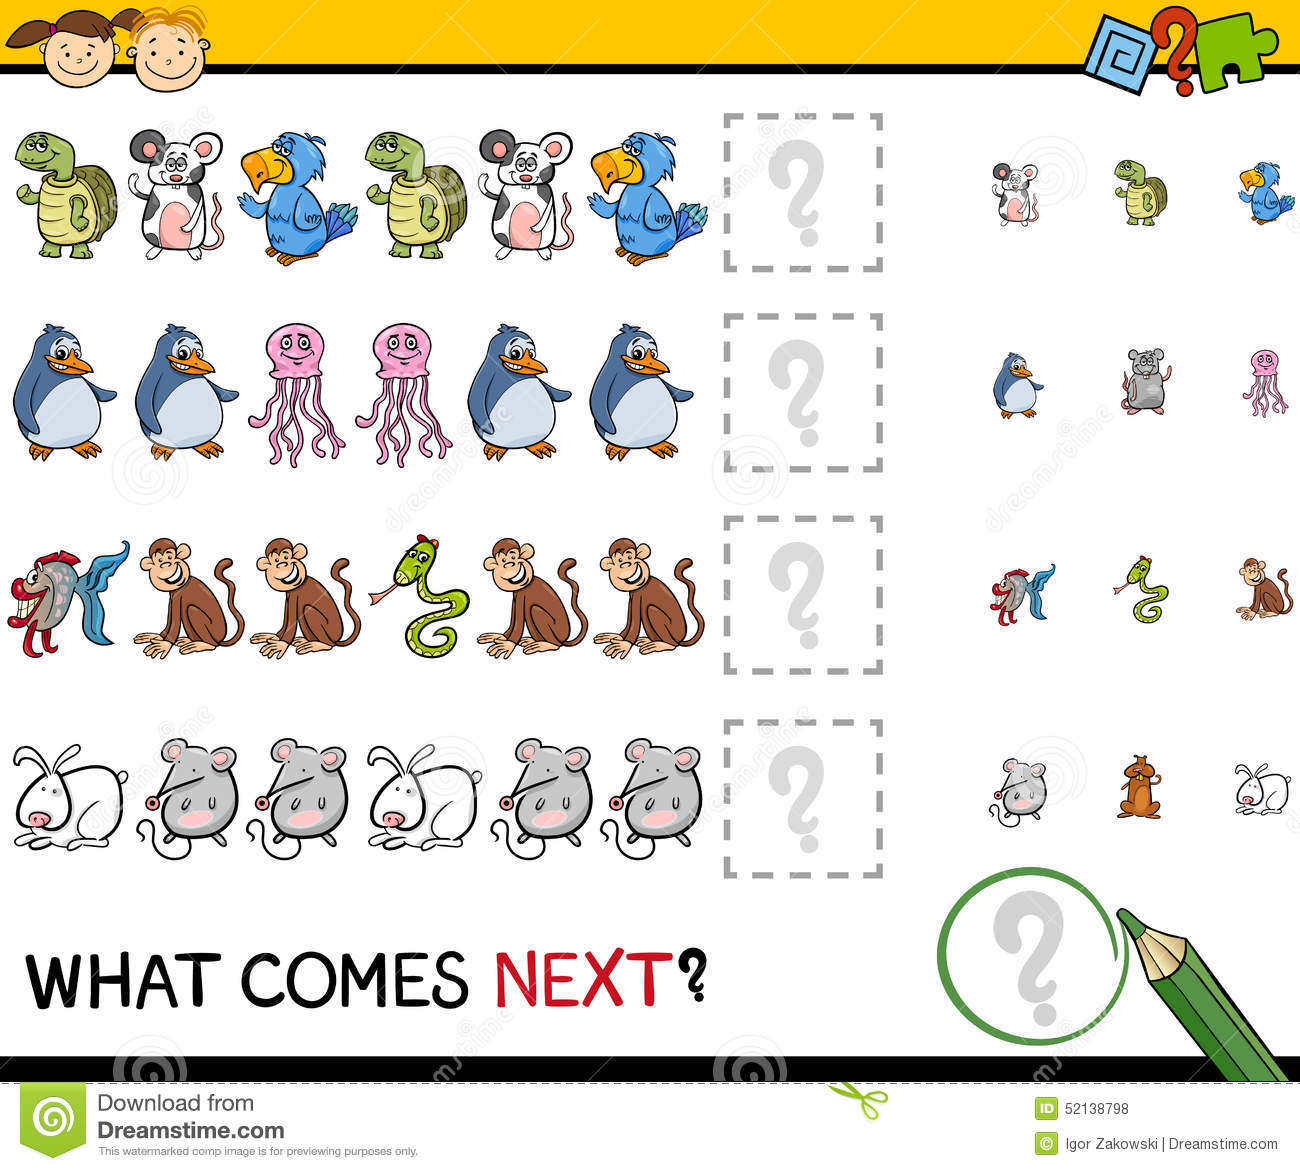 Free Worksheets more or less worksheets preschool : What Comes Next Game Cartoon Stock Vector - Image: 52138798